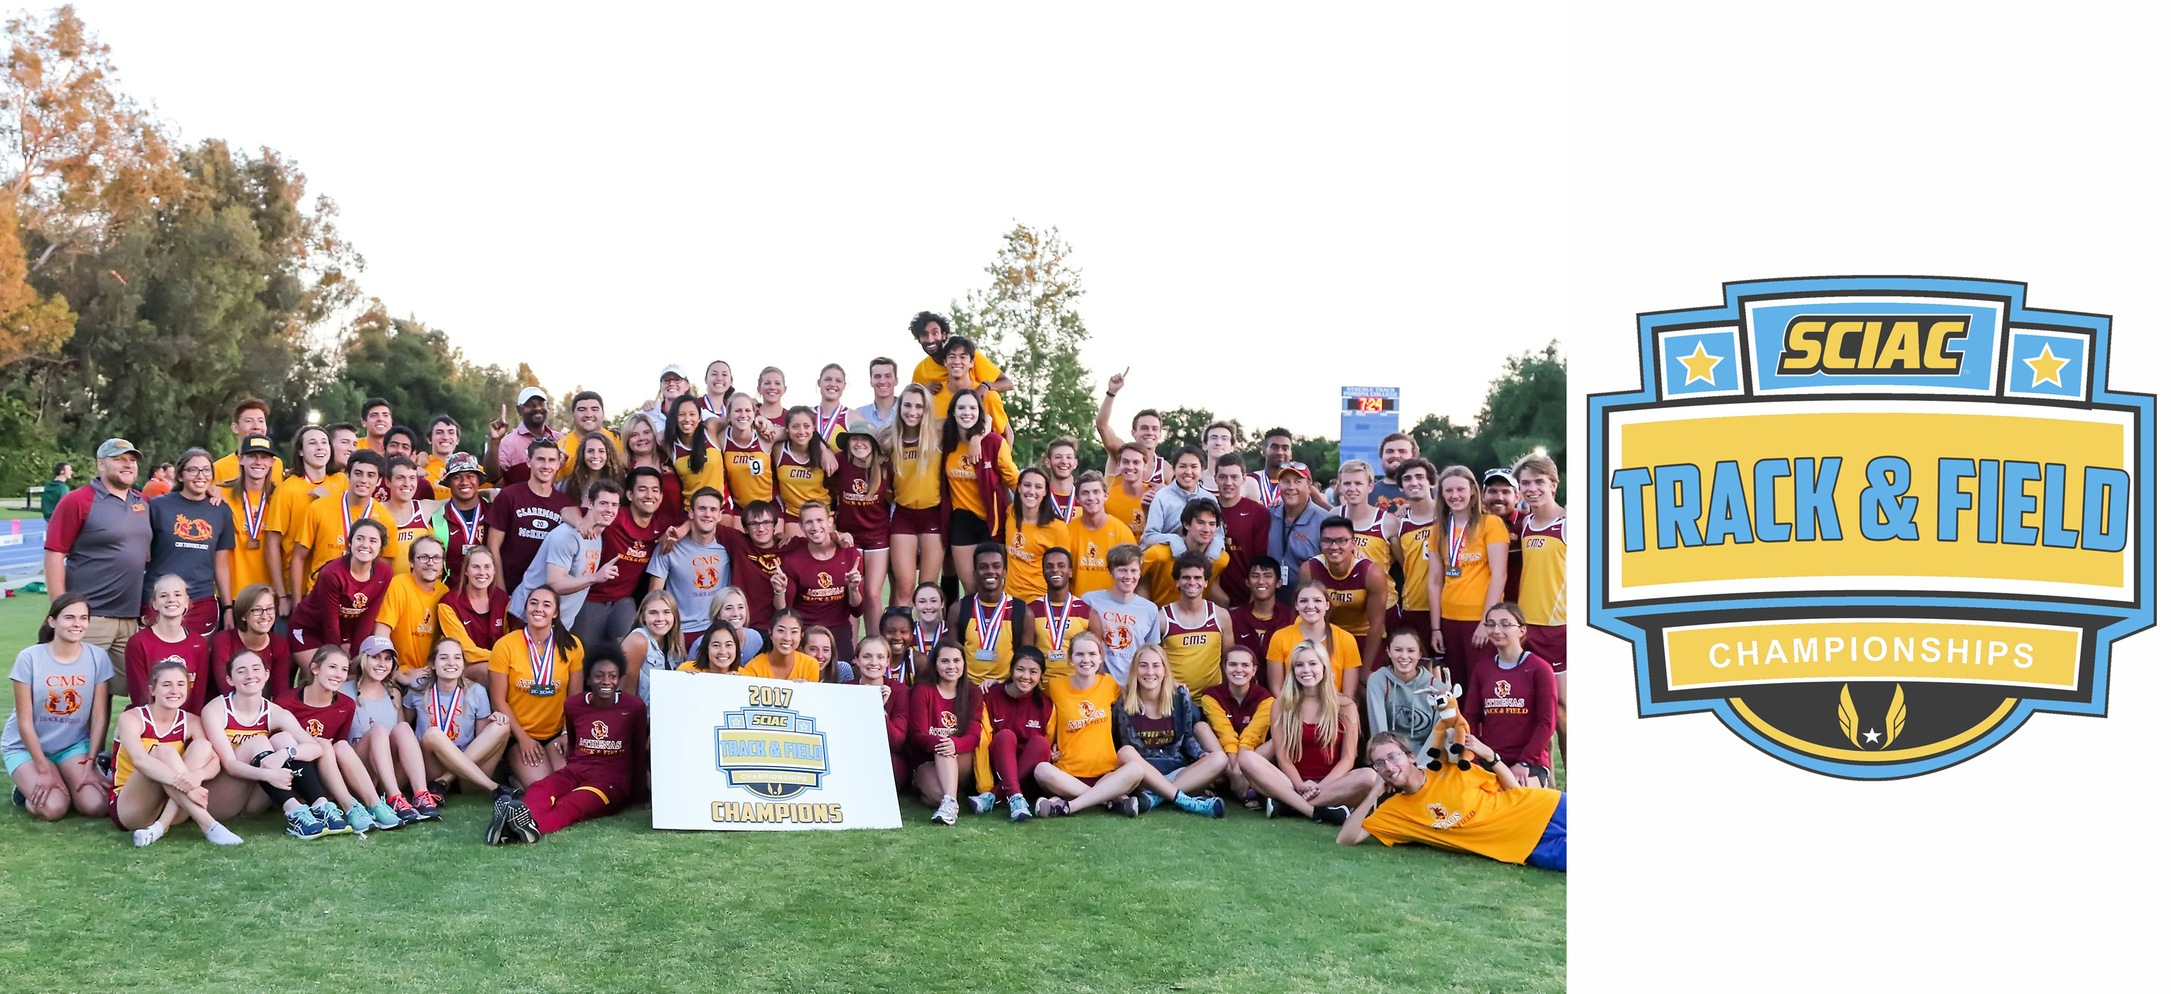 CMS sweeps track & field SCIAC Championships